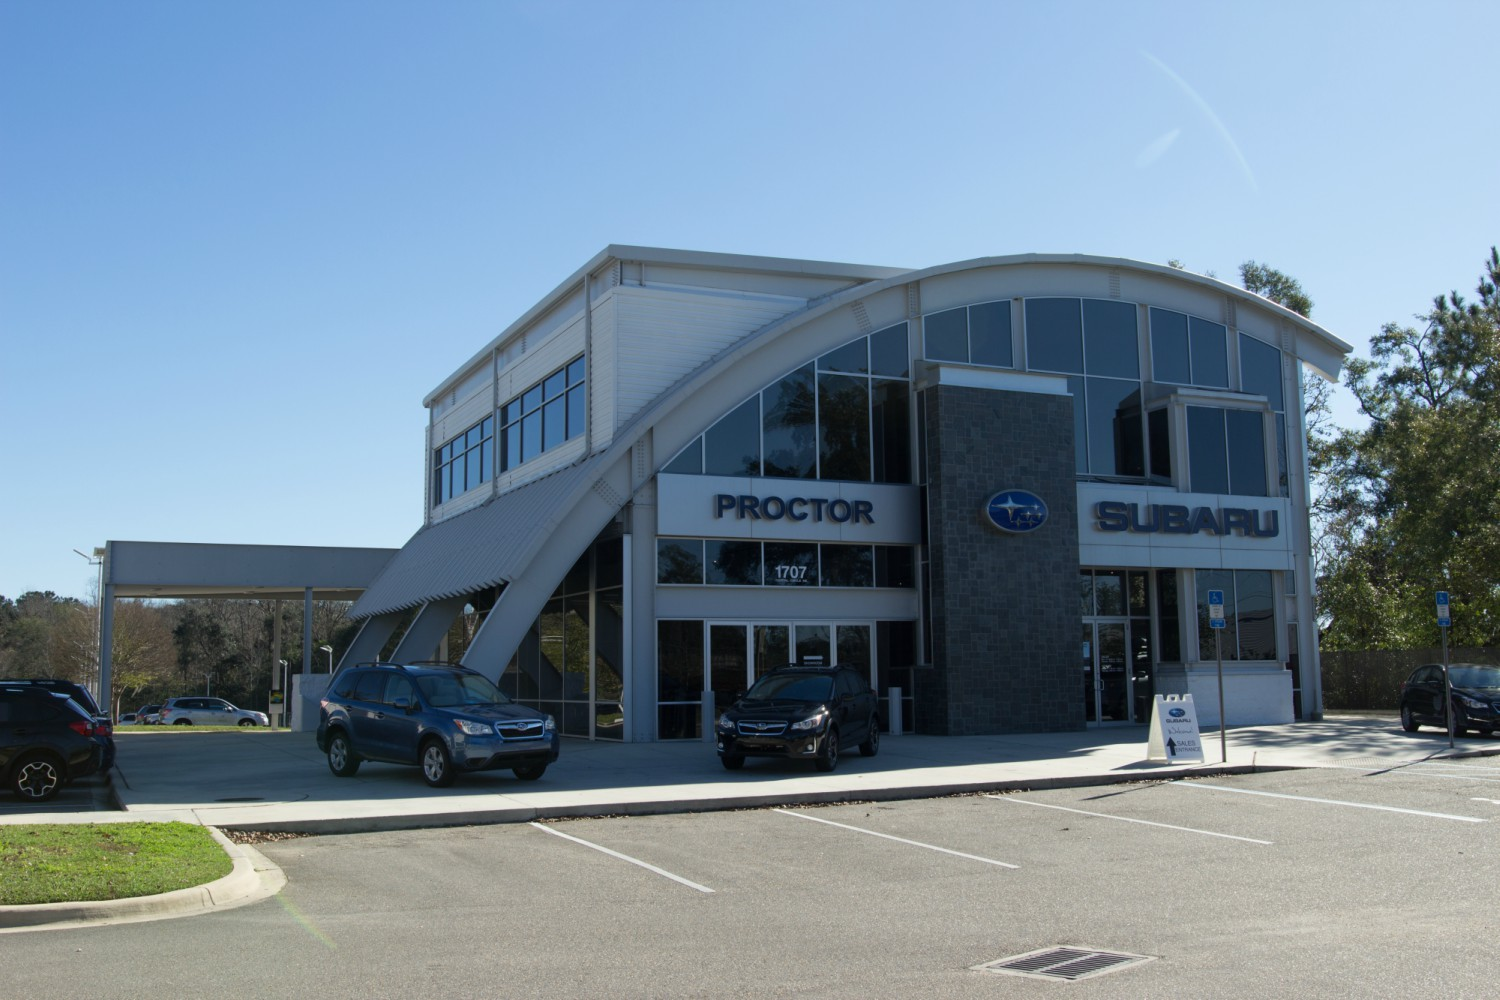 Proctor Used Cars Tallahassee